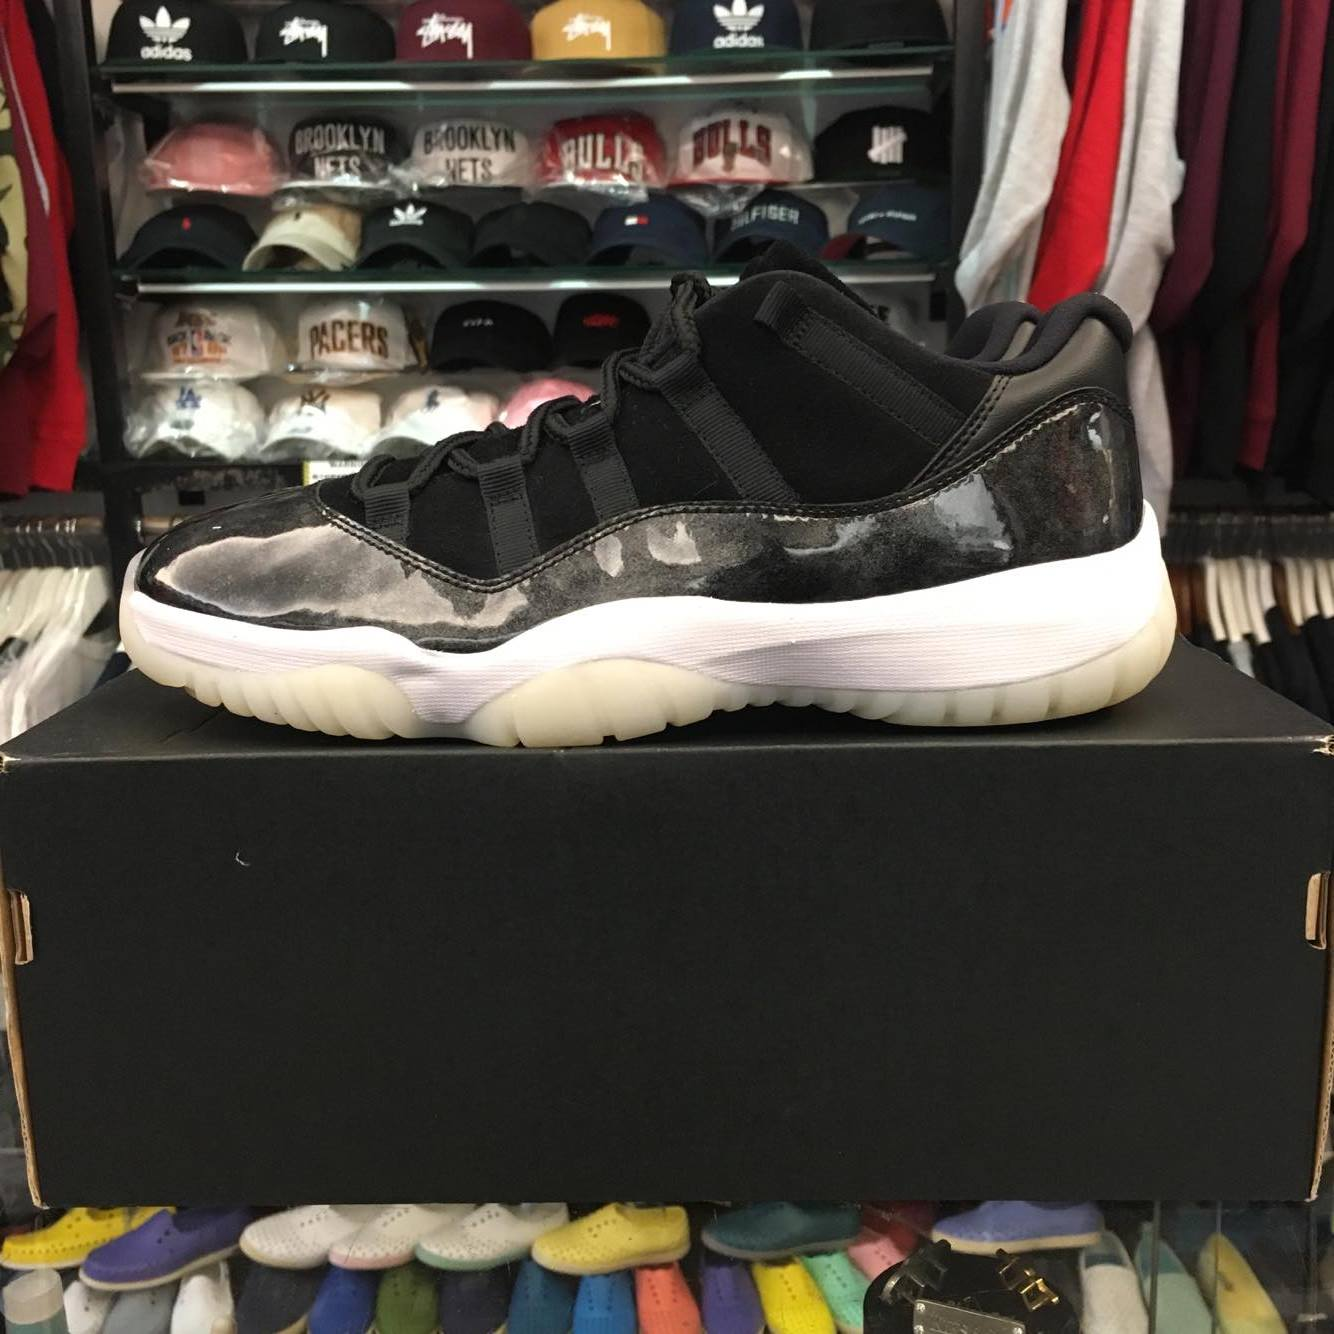 35577613b21 現貨BEETLE AIR JORDAN 11 LOW BARONS 低筒巴龍麂皮528895-010